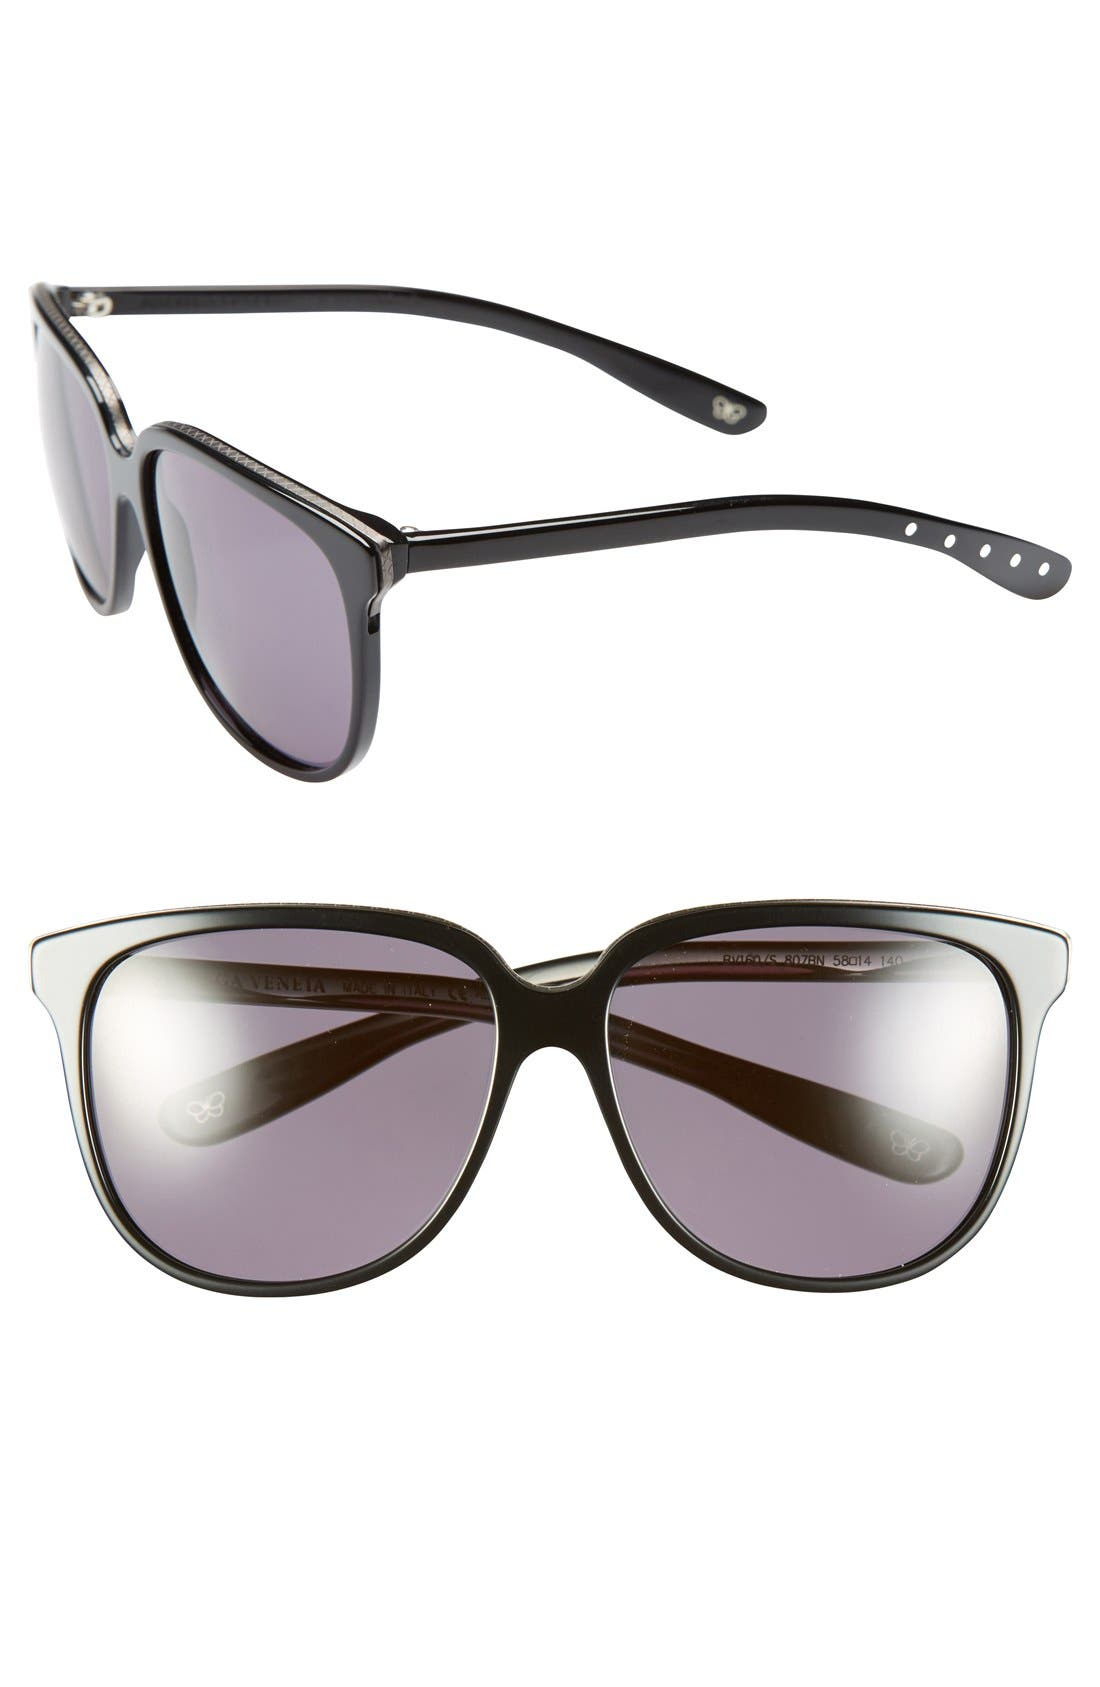 Main Image - Bottega Veneta Retro 58mm Sunglasses